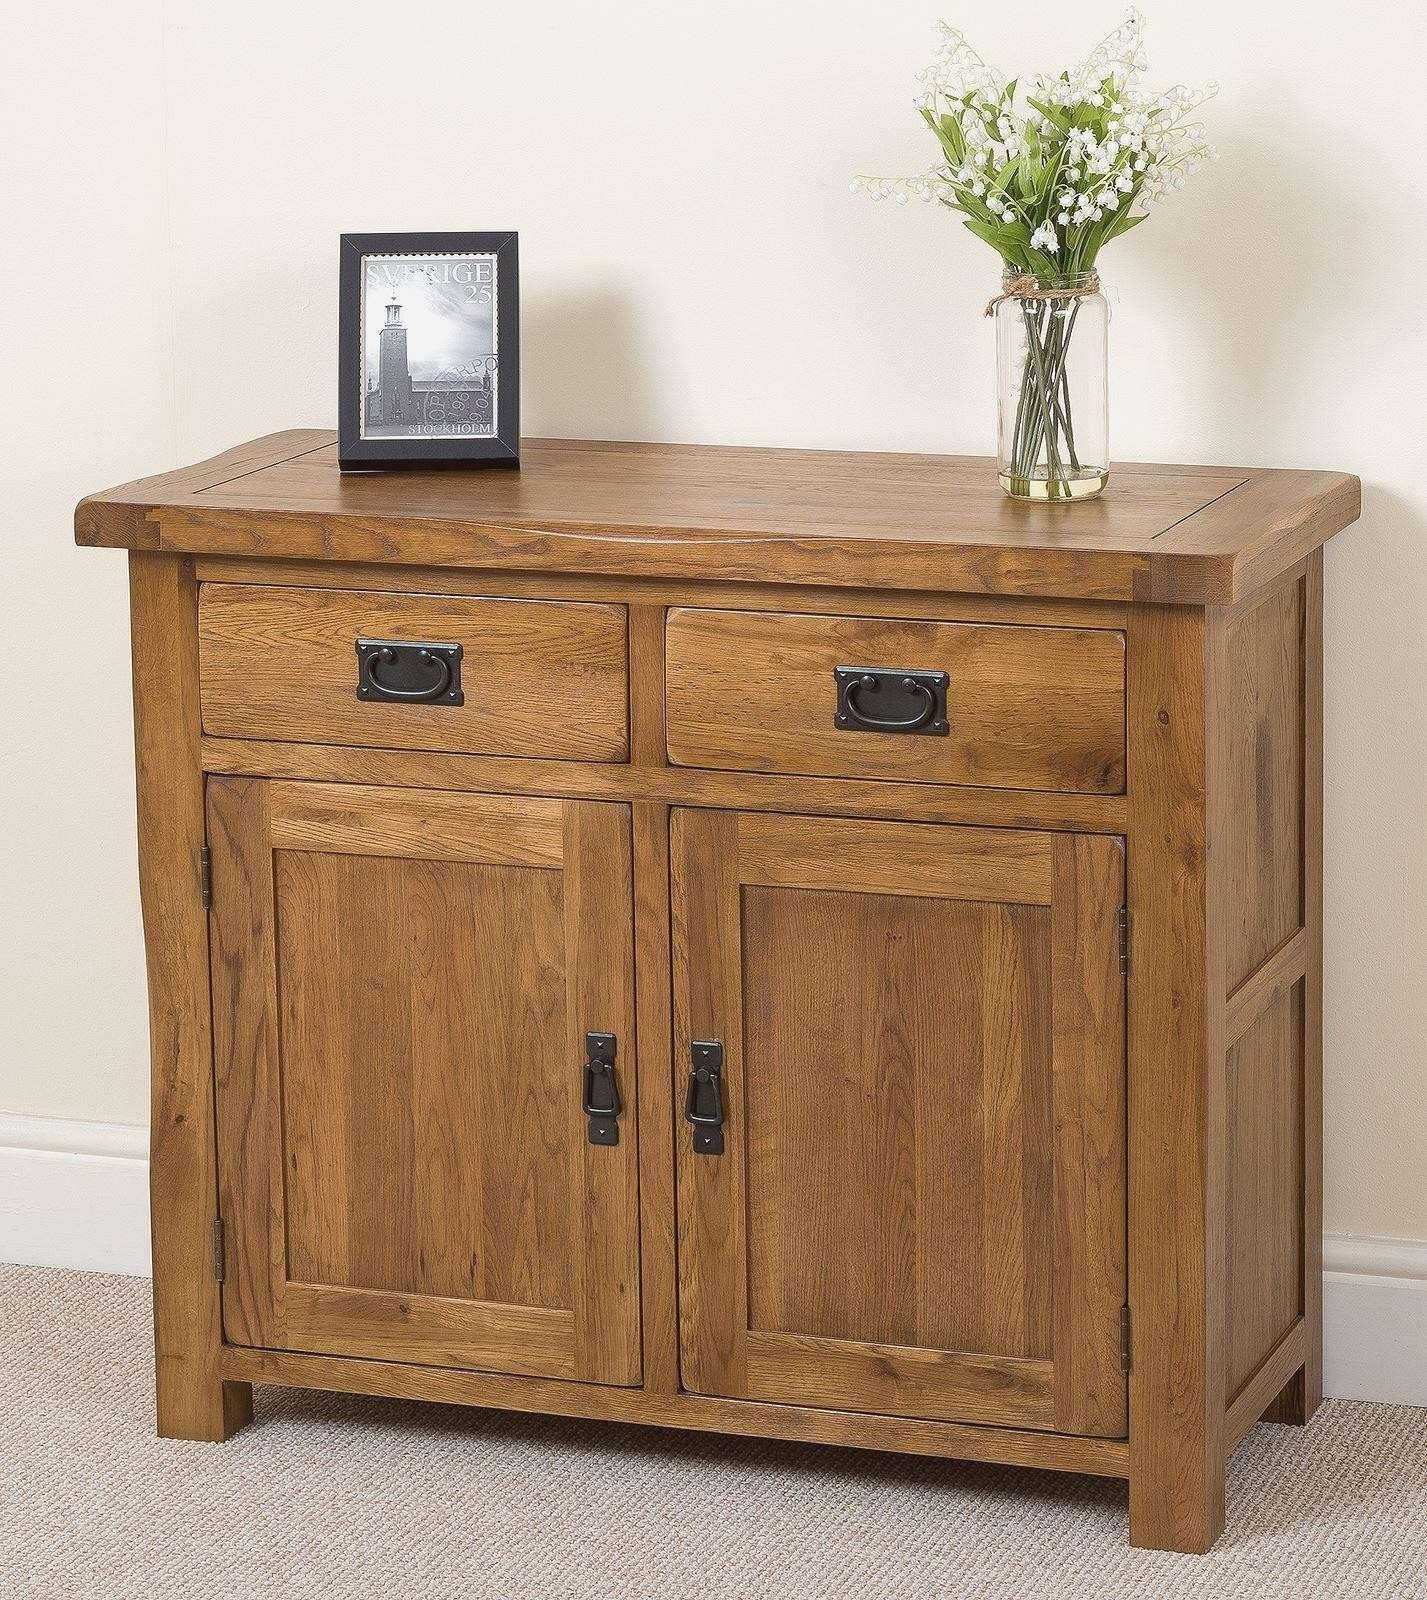 New Rustic Sideboards And Buffets – Bjdgjy Within Rustic Sideboards (View 9 of 20)